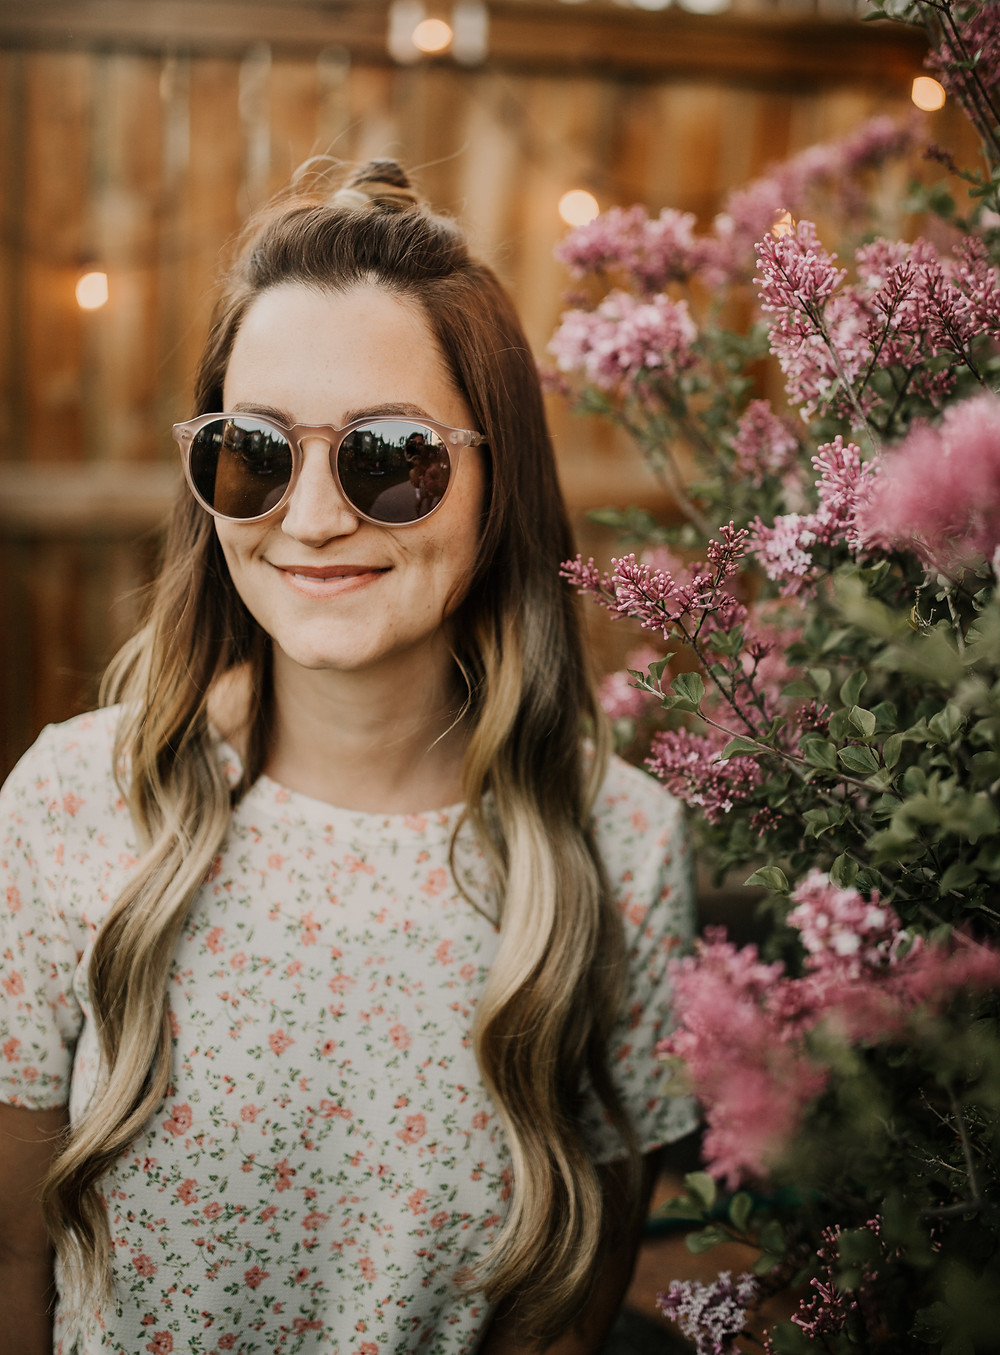 Vintage round sunglasses on girl beside lilac bush